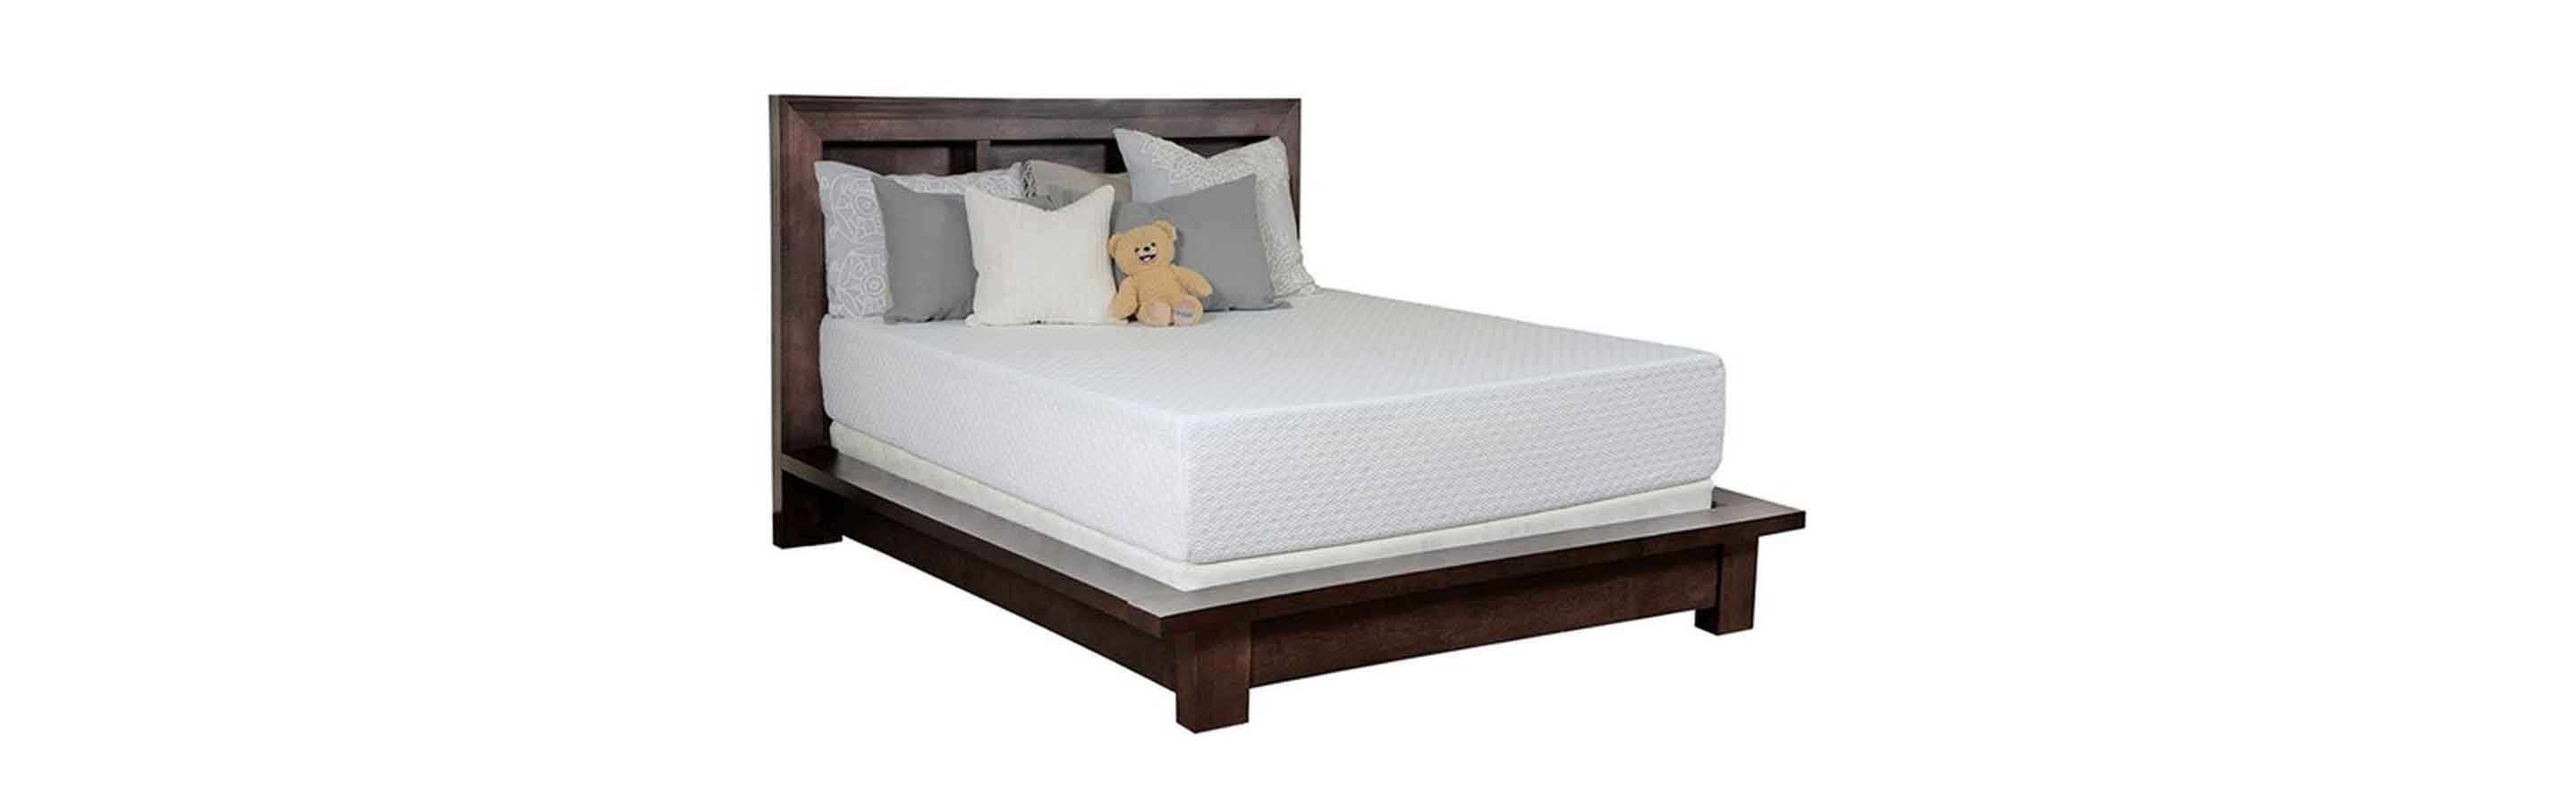 Mattress Firm Reviews What 2018 Beds To Buy & Scams To Dodge